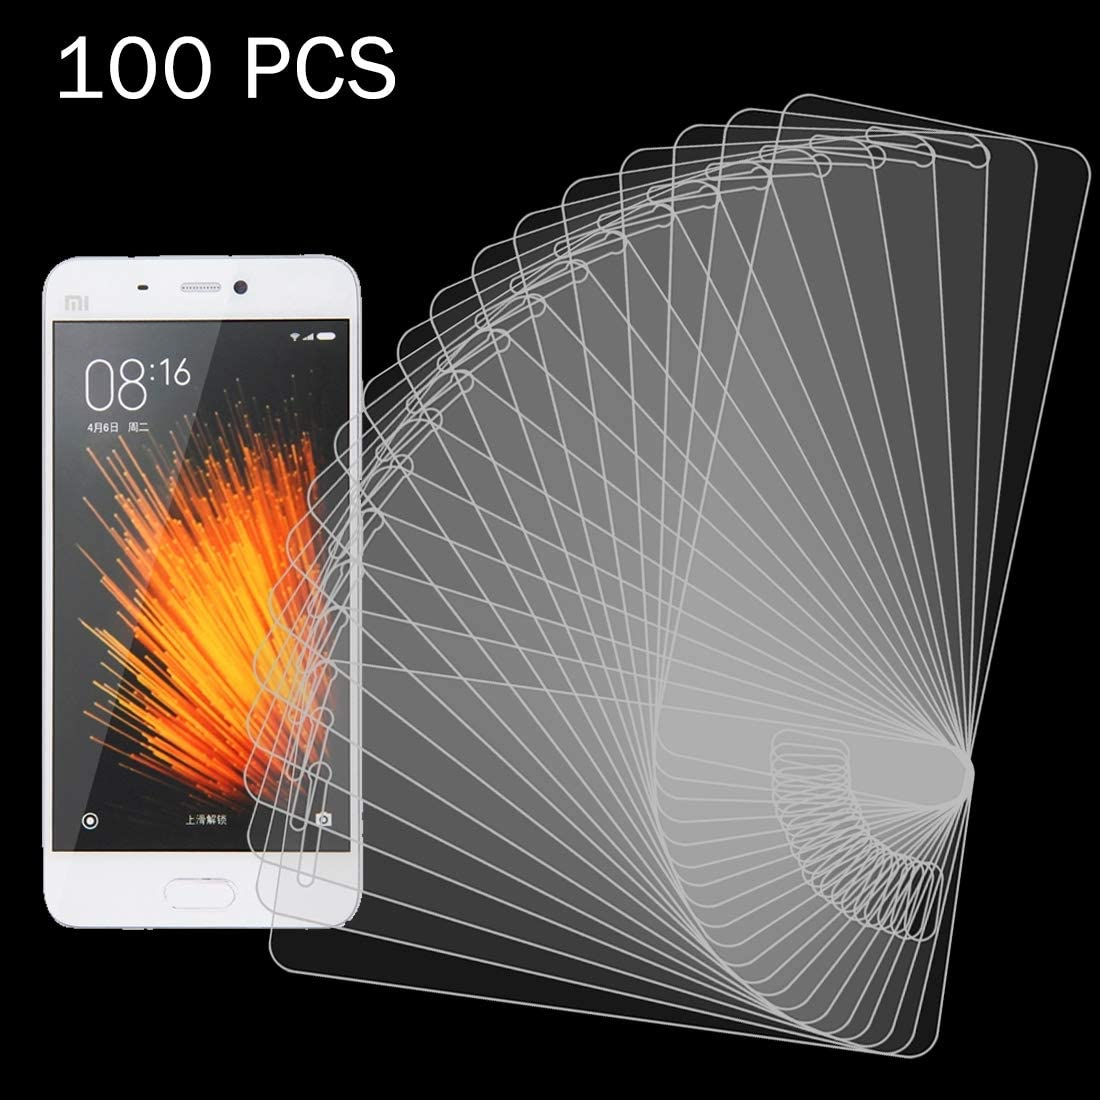 ProtectoresYHM 100 PCS for Xiaomi Mi 5 0.26mm 9H Surface Hardness 2.5D Explosion-Proof Tempered Glass Screen Film